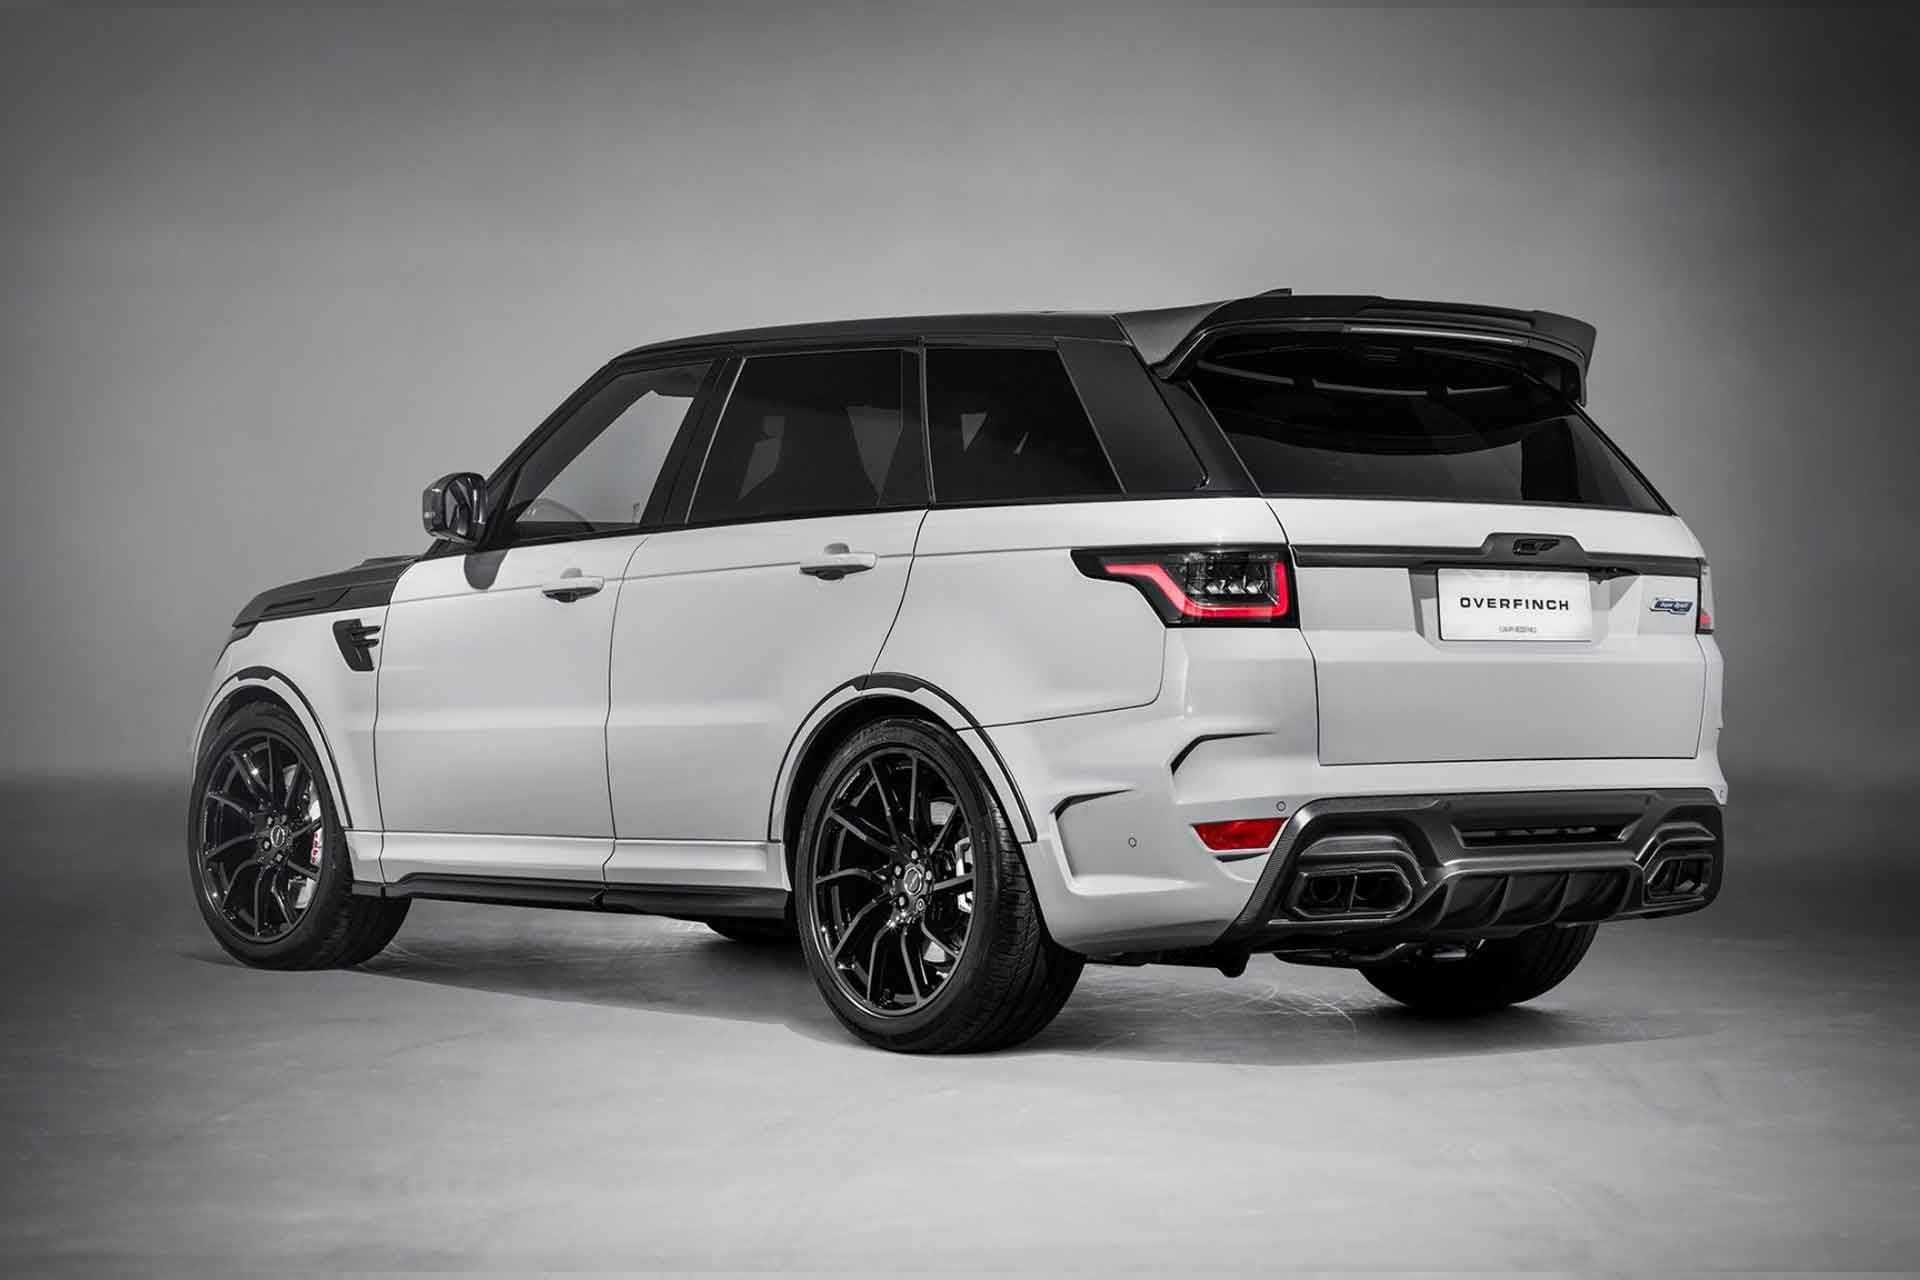 2020 Overfinch Supersport Suv Range Rover Range Rover Sport Supersport